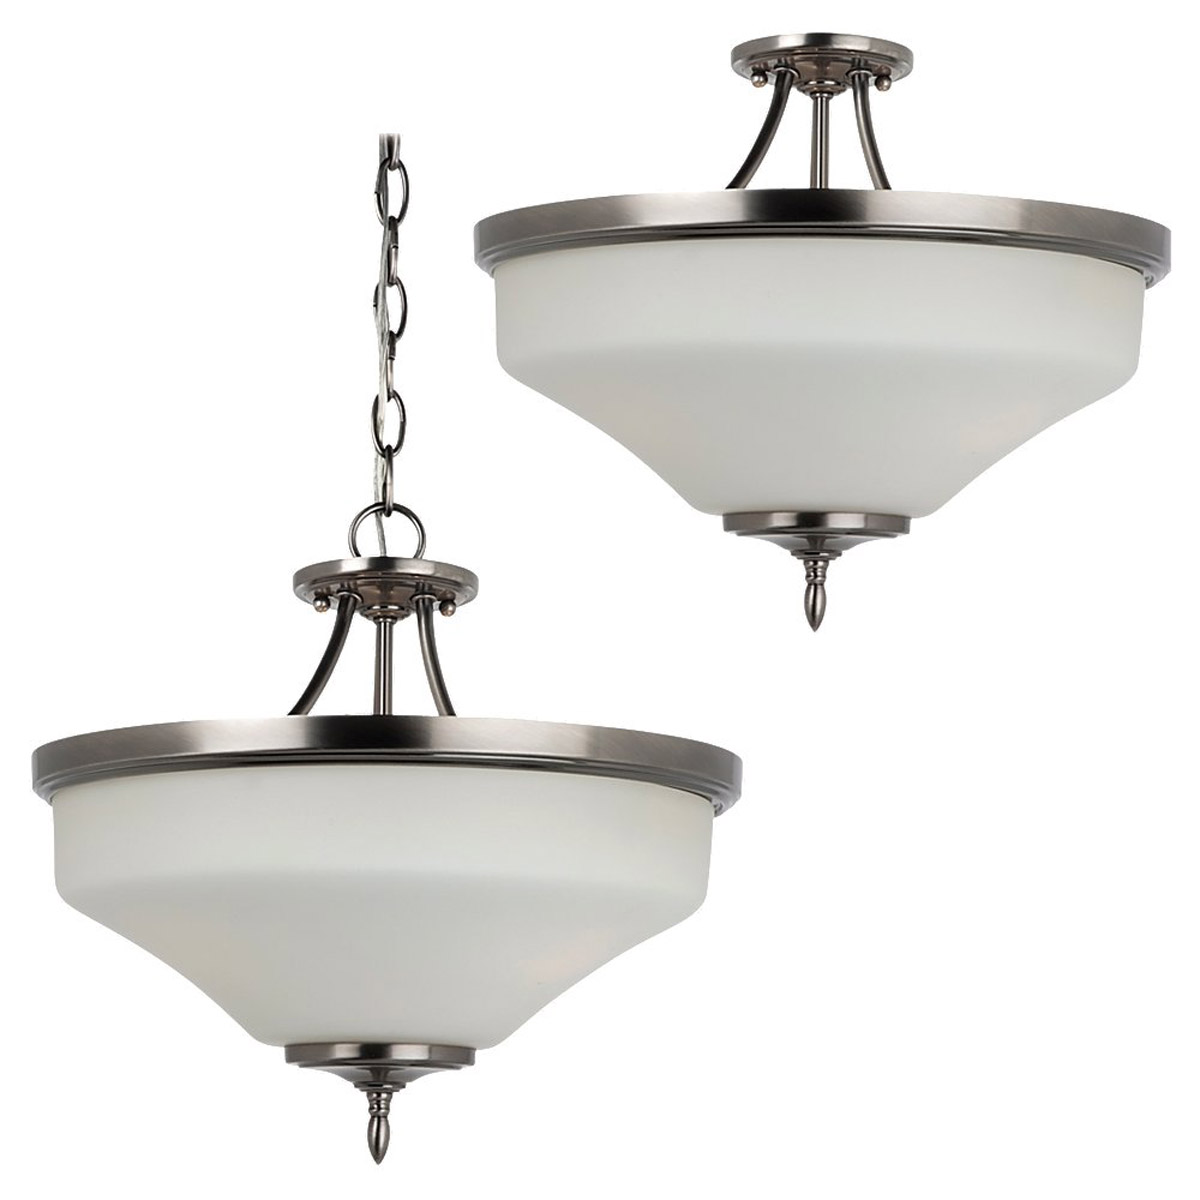 Sea Gull Lighting Montreal 3 Light Semi-Flush Mount Convertible in Antique Brushed Nickel 77180BLE-965